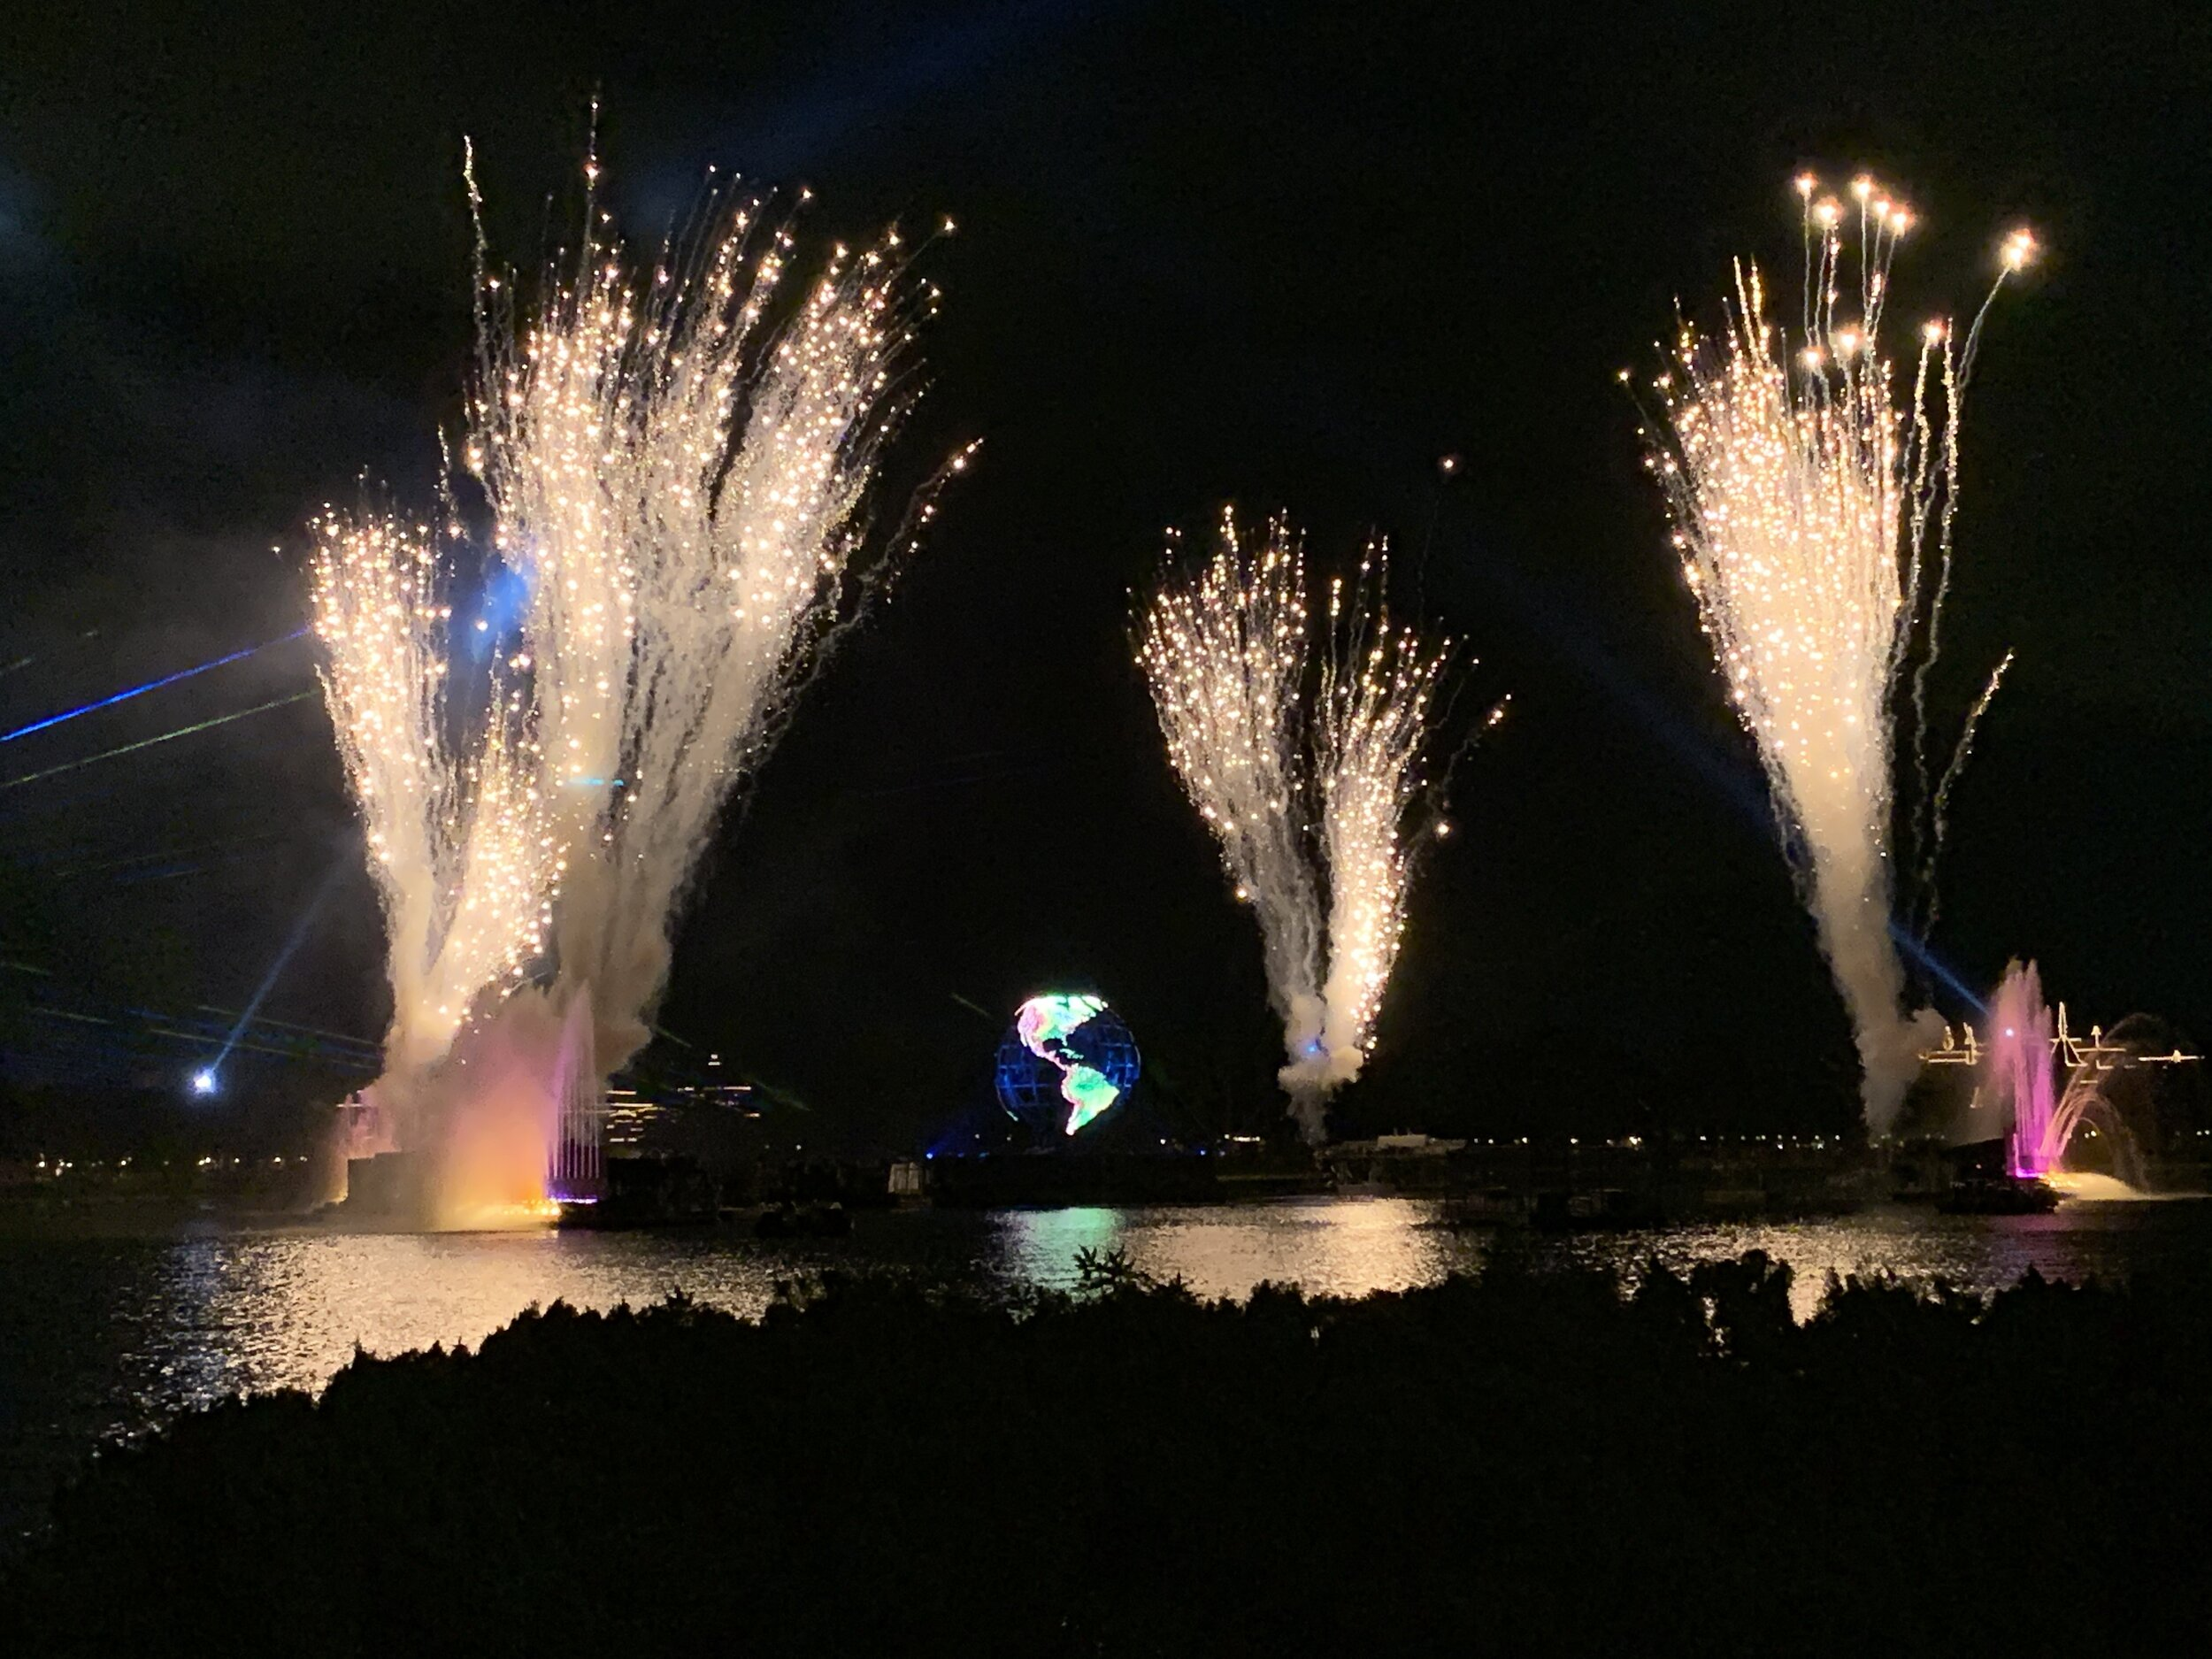 A glimpse of our view of Illuminations that night!